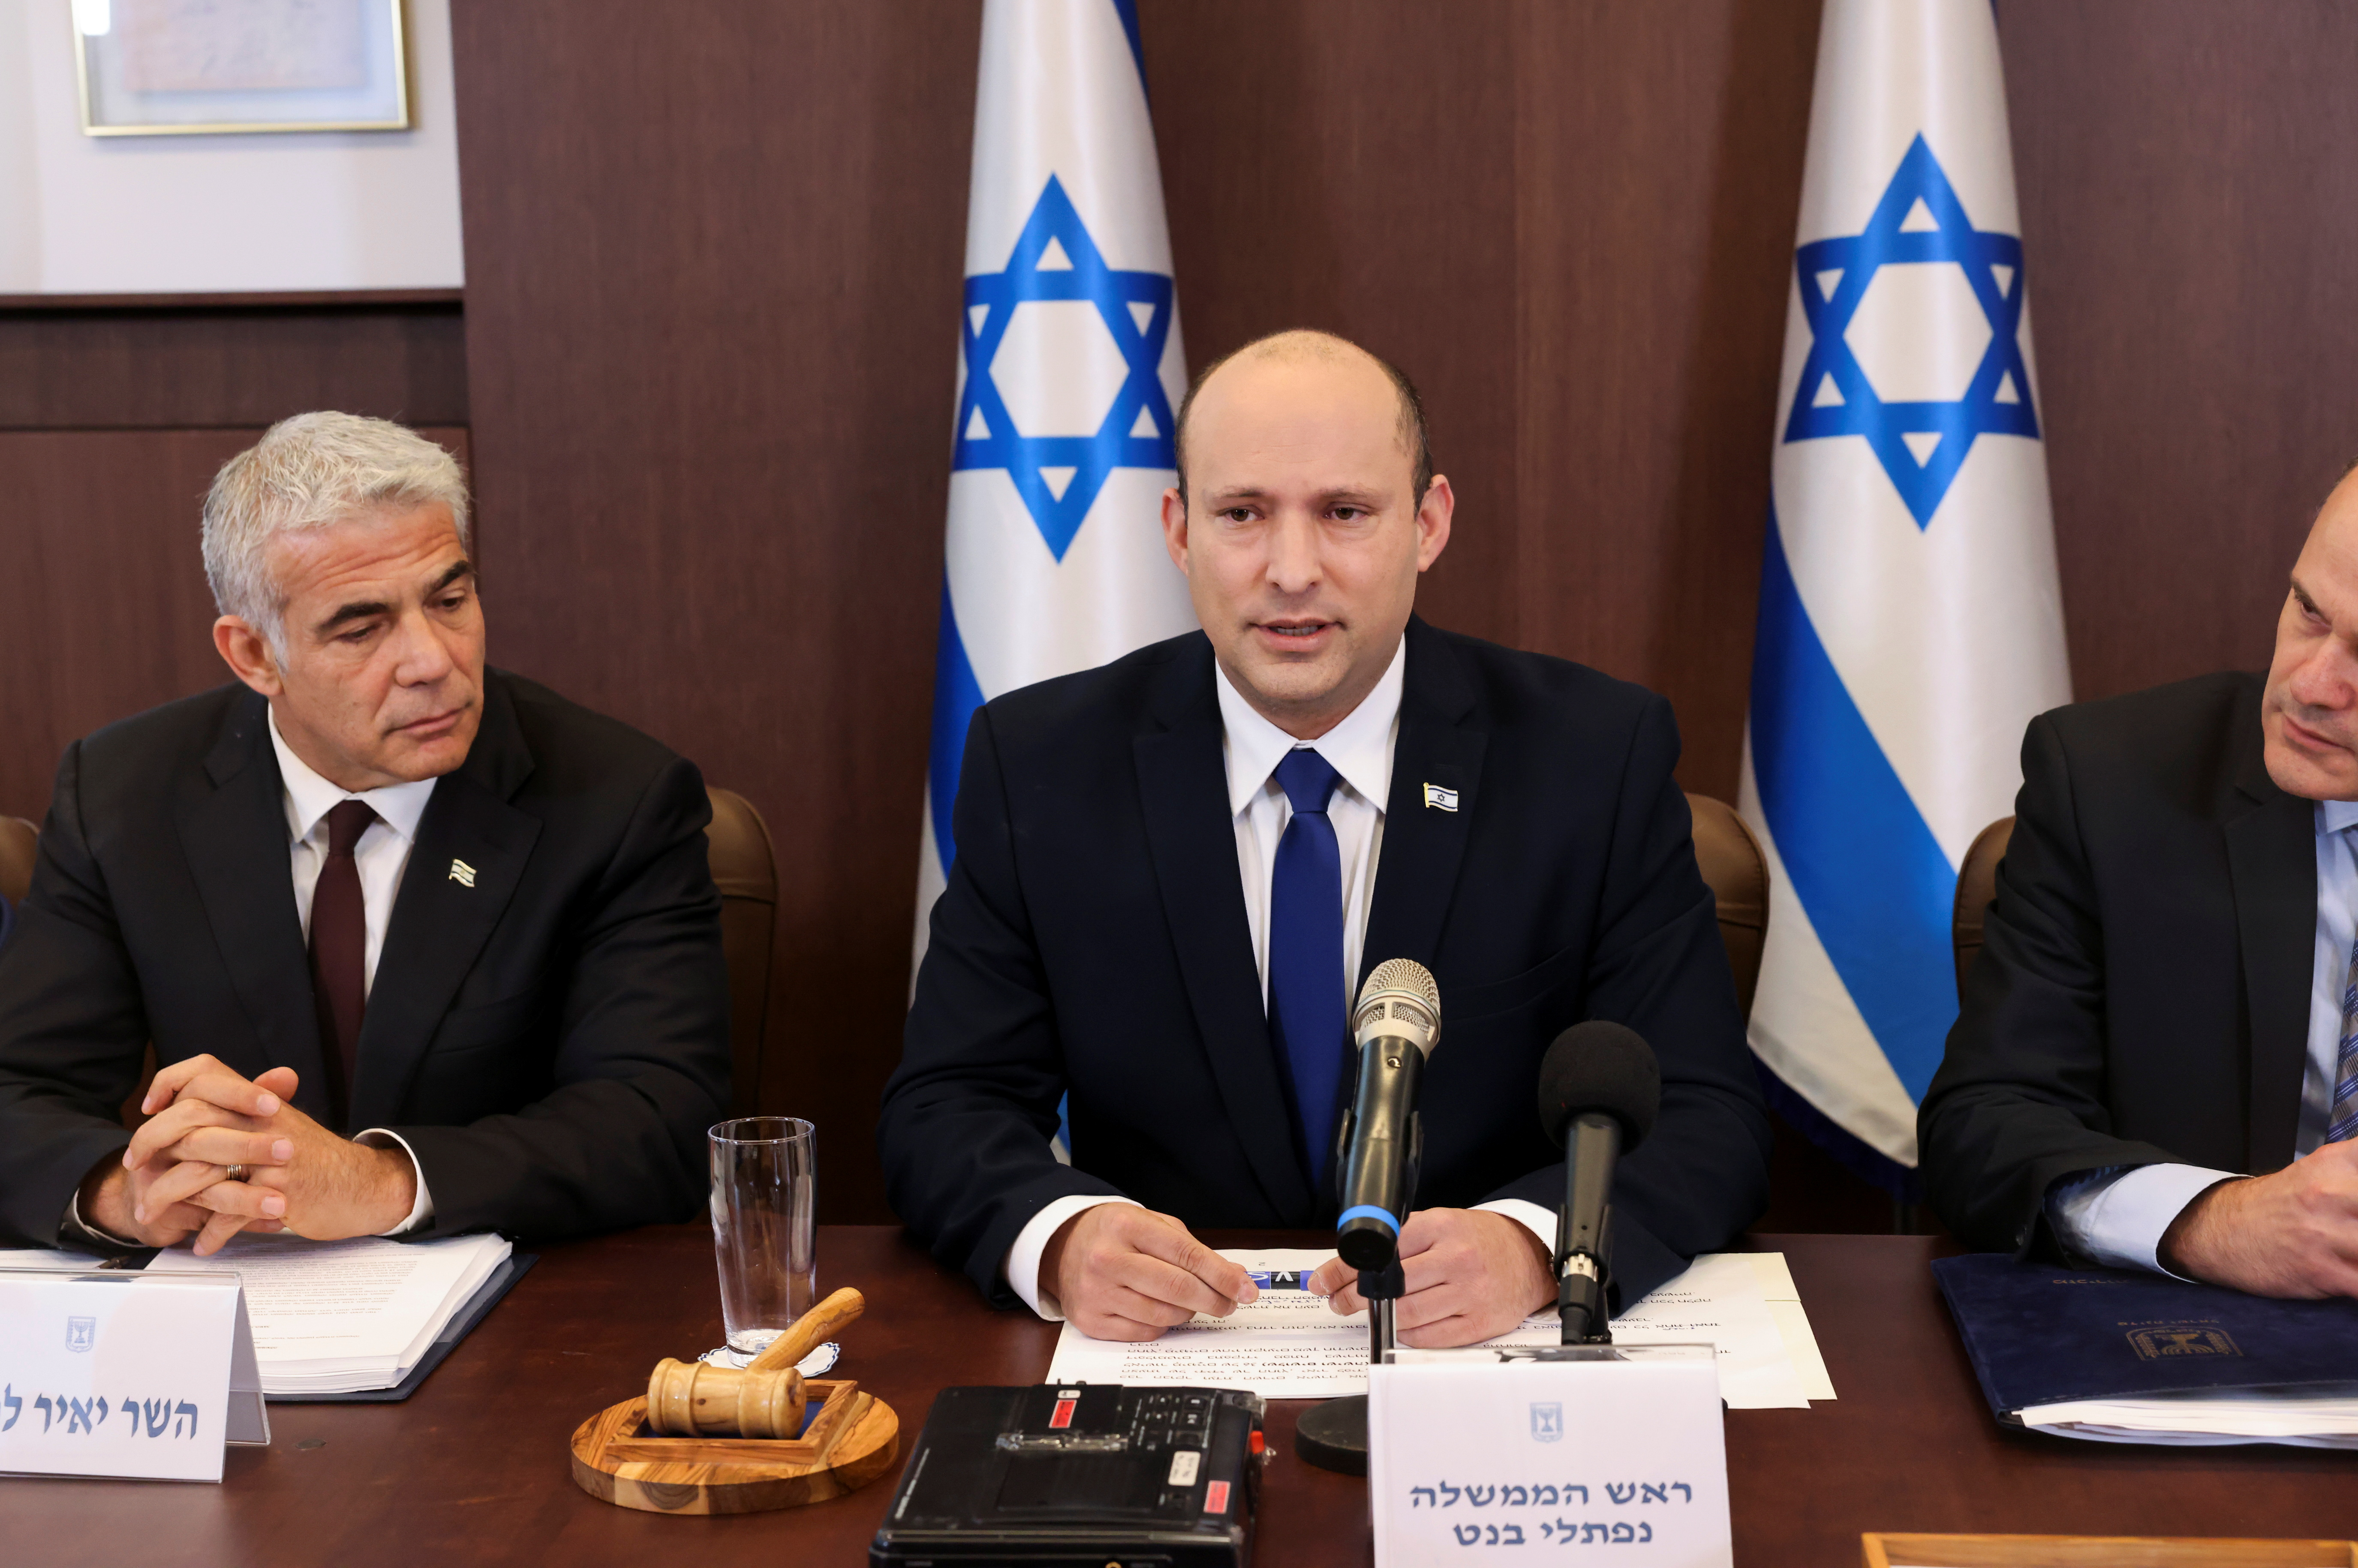 Israeli Prime Minister Naftali Bennett chairs the first weekly cabinet meeting of his new government in Jerusalem June 20, 2021. Emmanuel Dunand/Pool via REUTERS